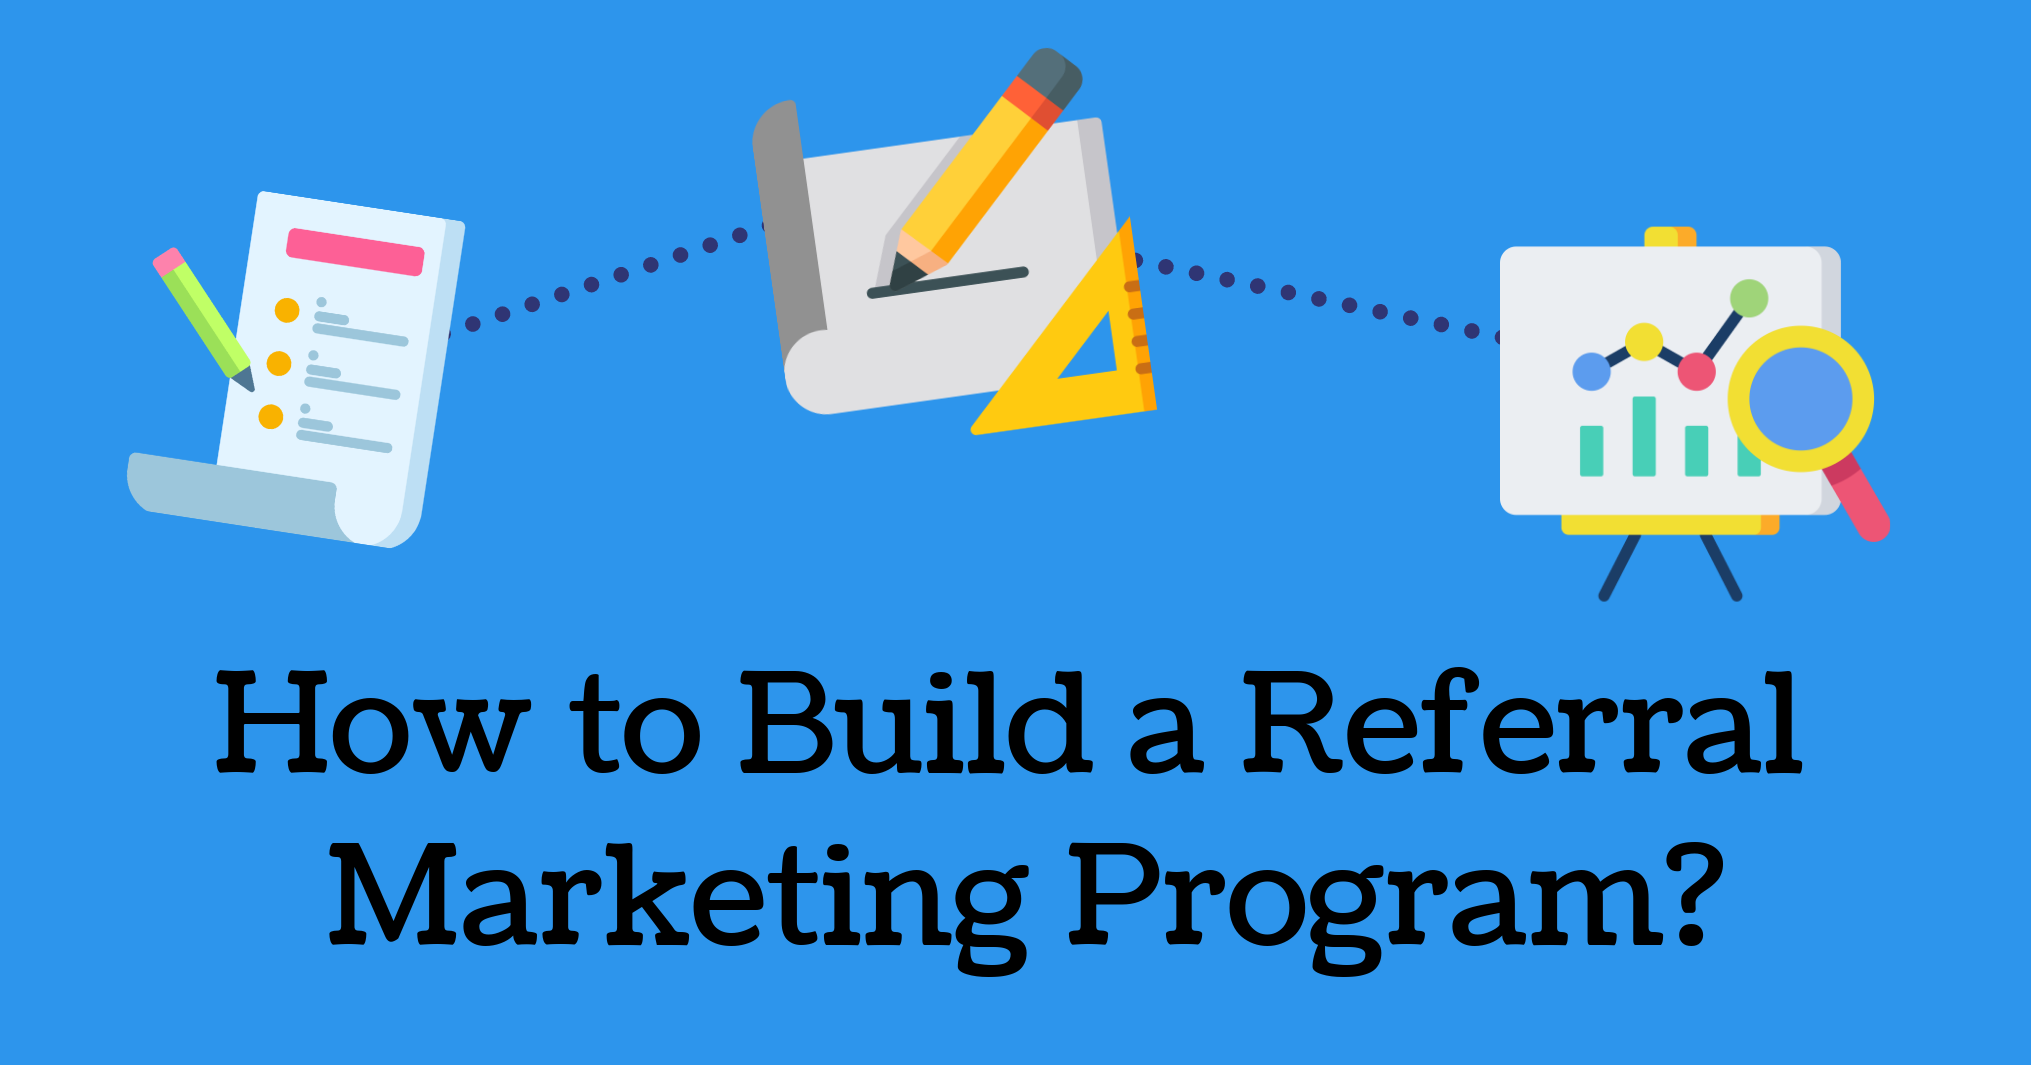 Setting up a referral program